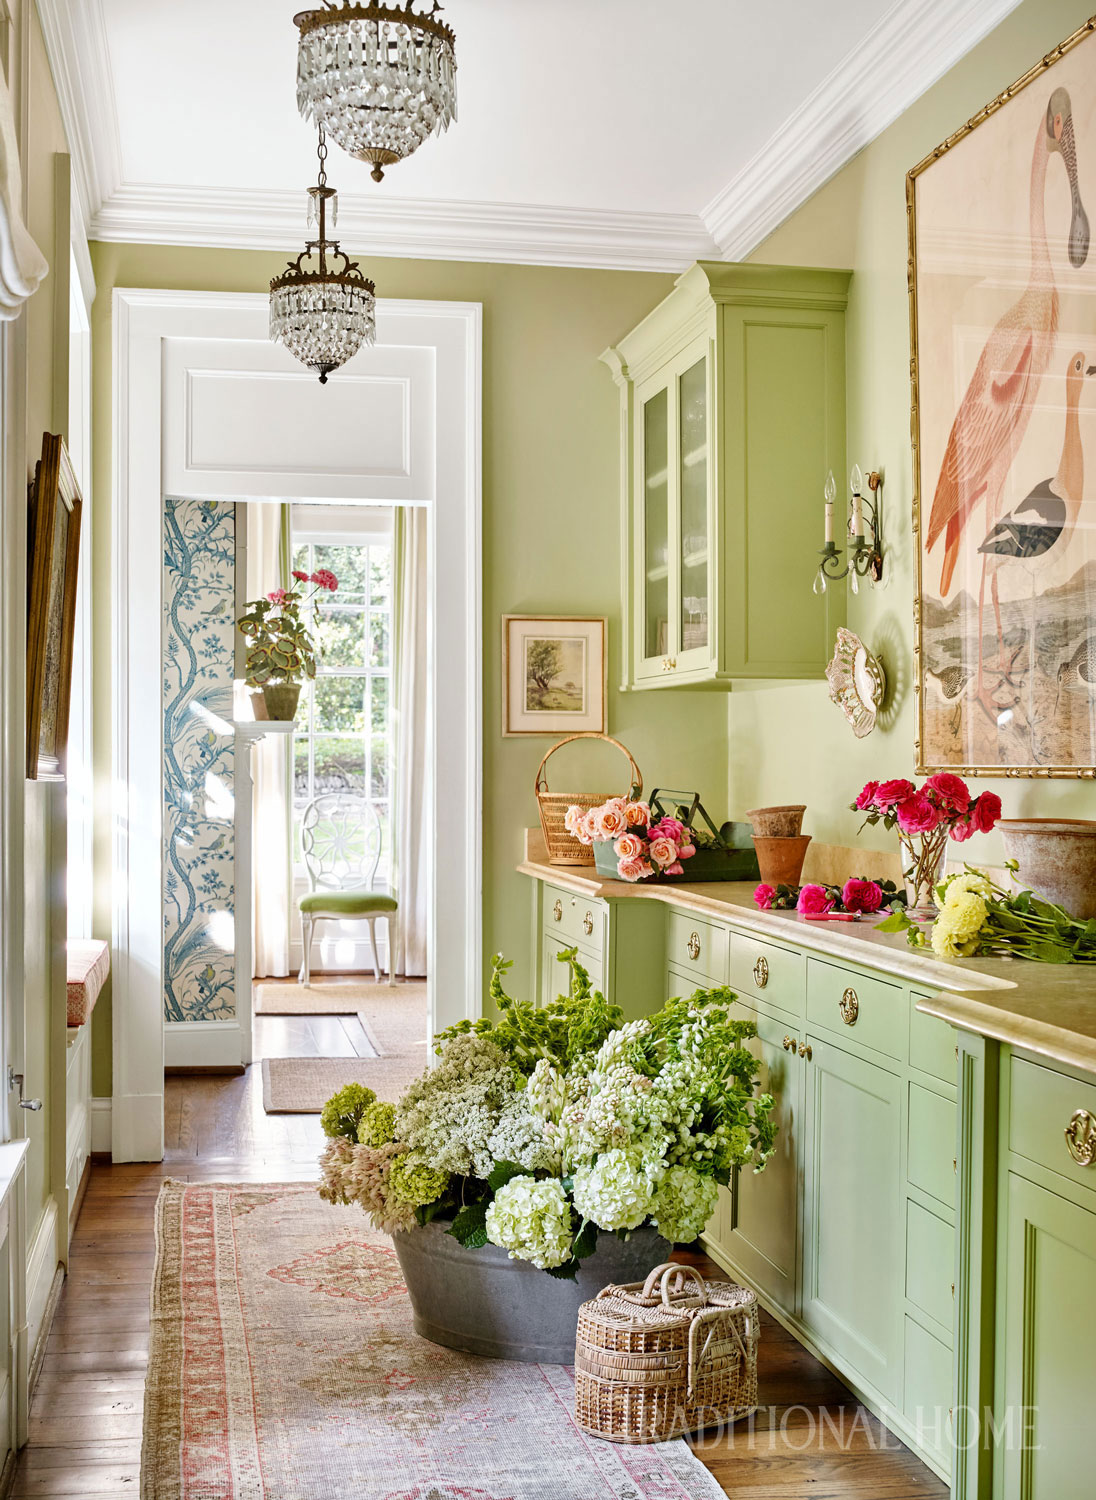 Bunny loves spending time in this colorful nook, where she prepares lavish flower arrangements for the dinner parties and fund-raising events she hosts at her home.